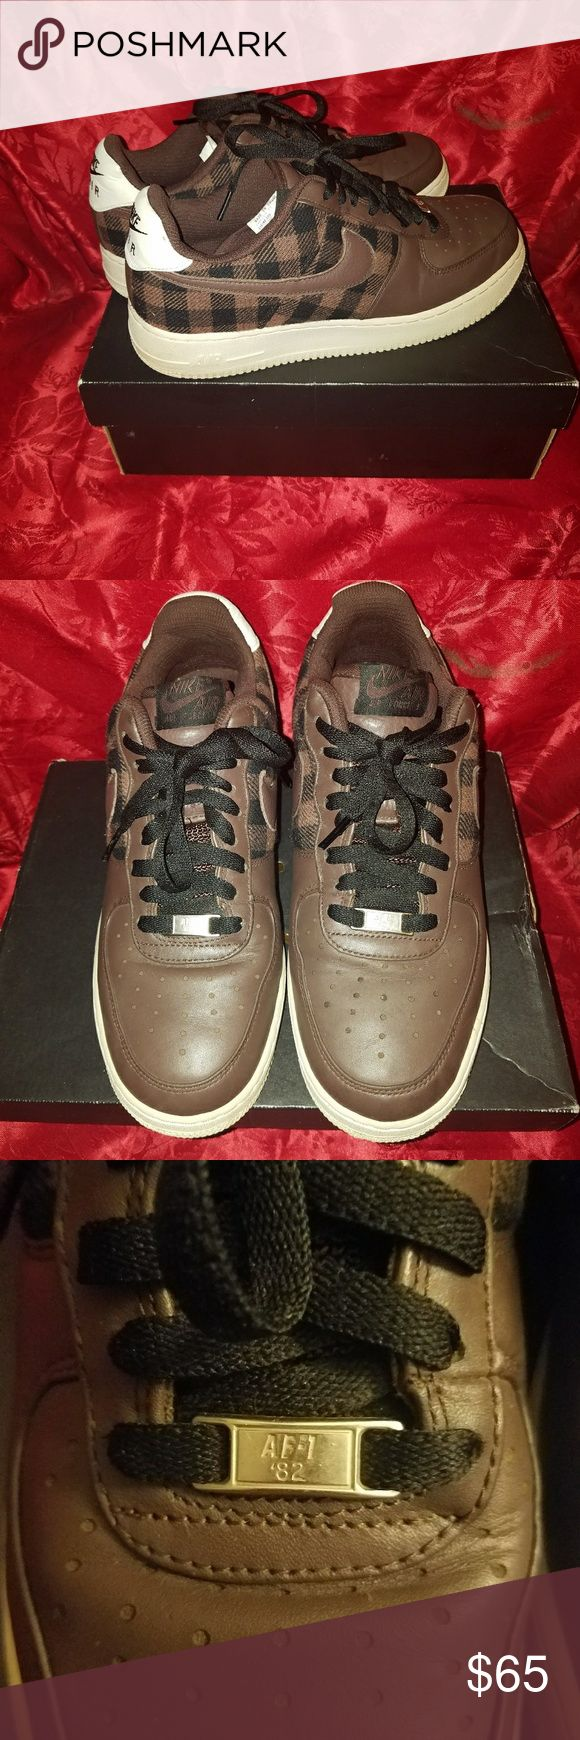 Vintage (2008) Air Jordan Air Force One These shoes are in great used condition. Jordan Shoes Sneakers